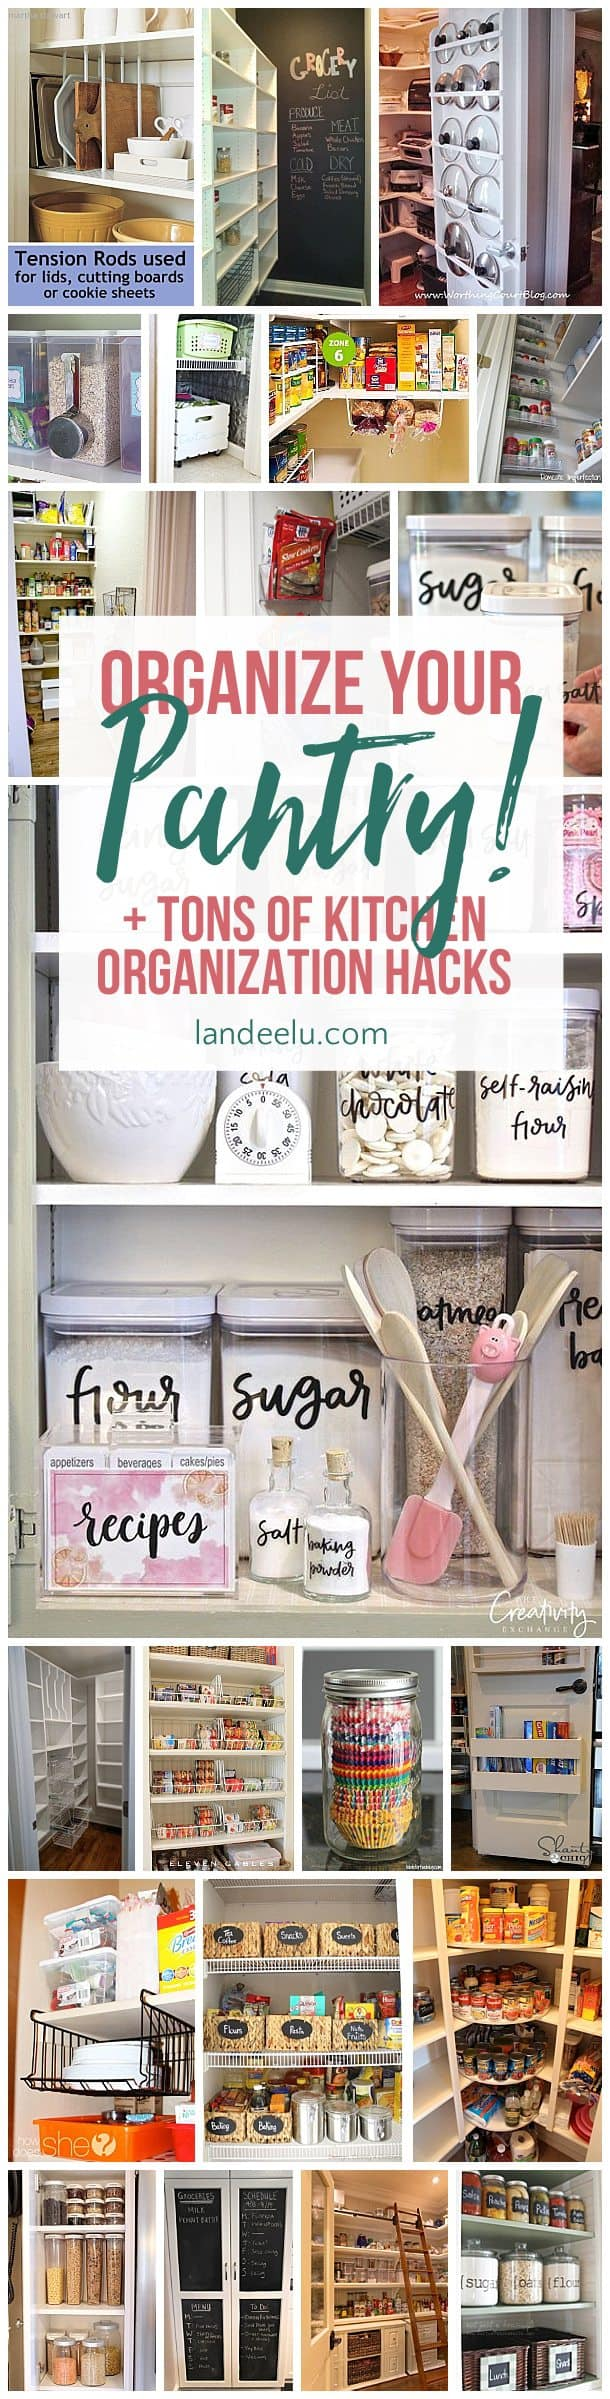 Kitchen-Organization-Hacks